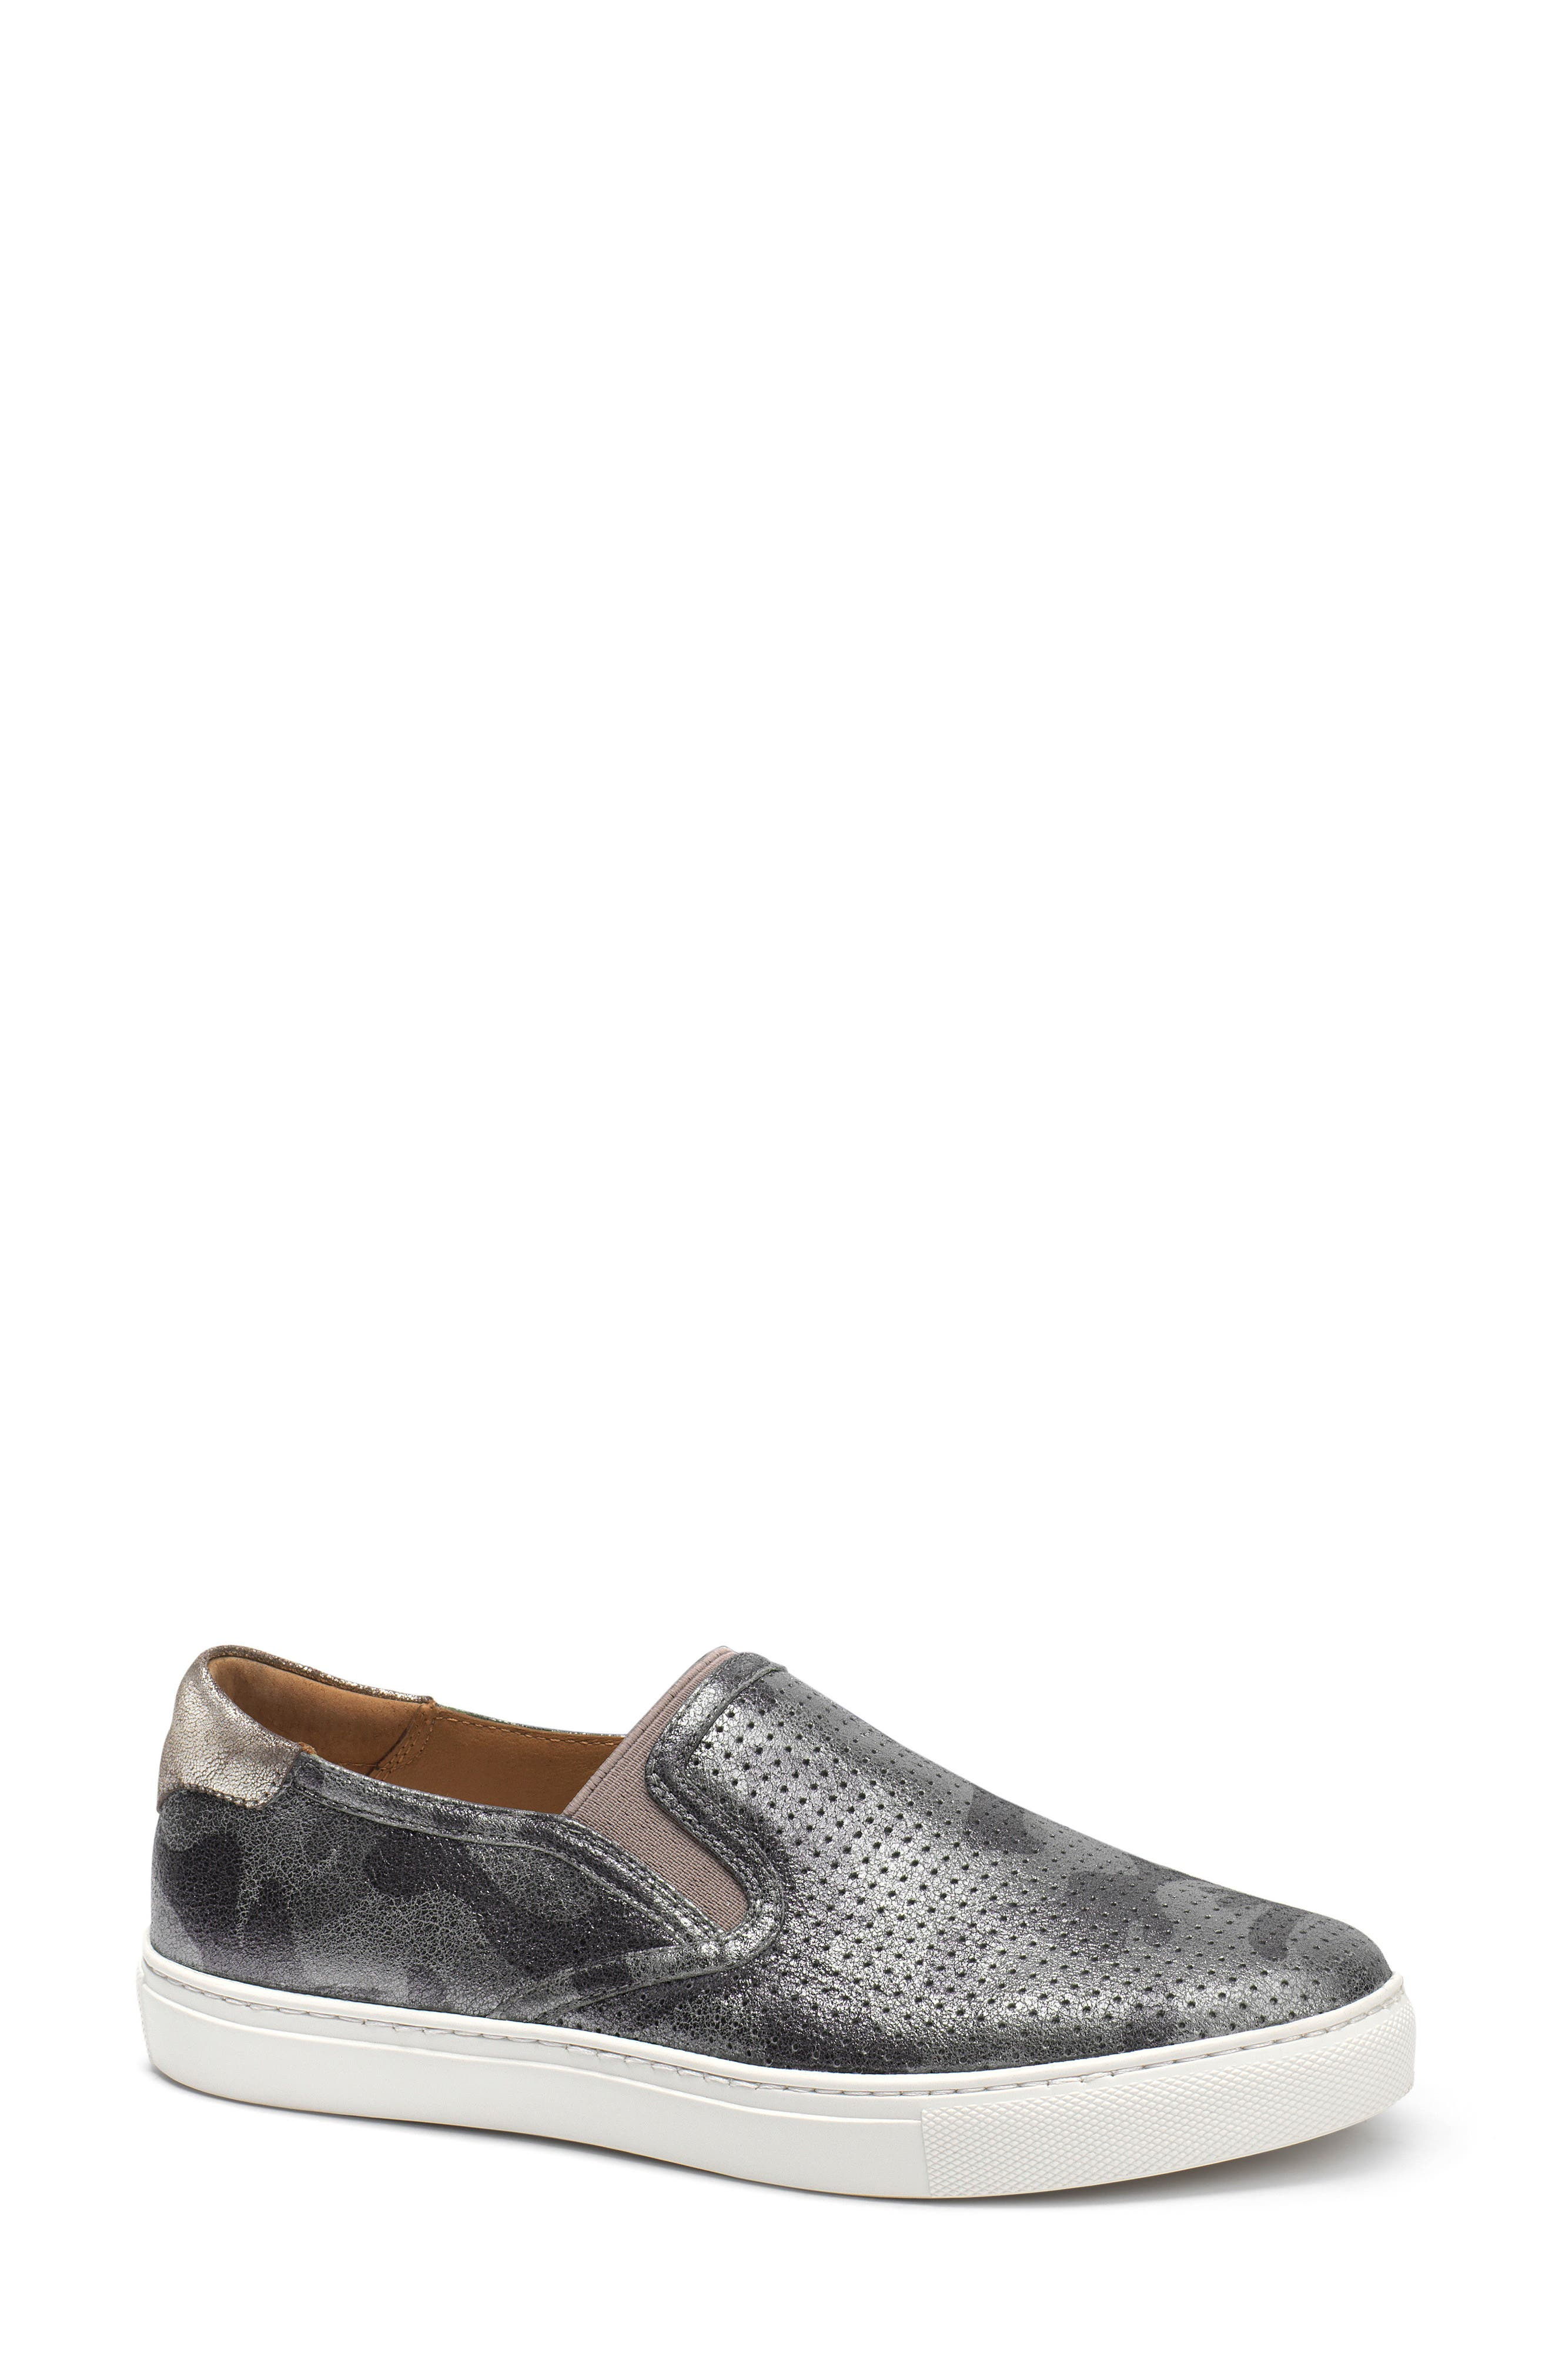 Lillian Water Resistant Slip-On Sneaker,                         Main,                         color, PEWTER CAMO LEATHER